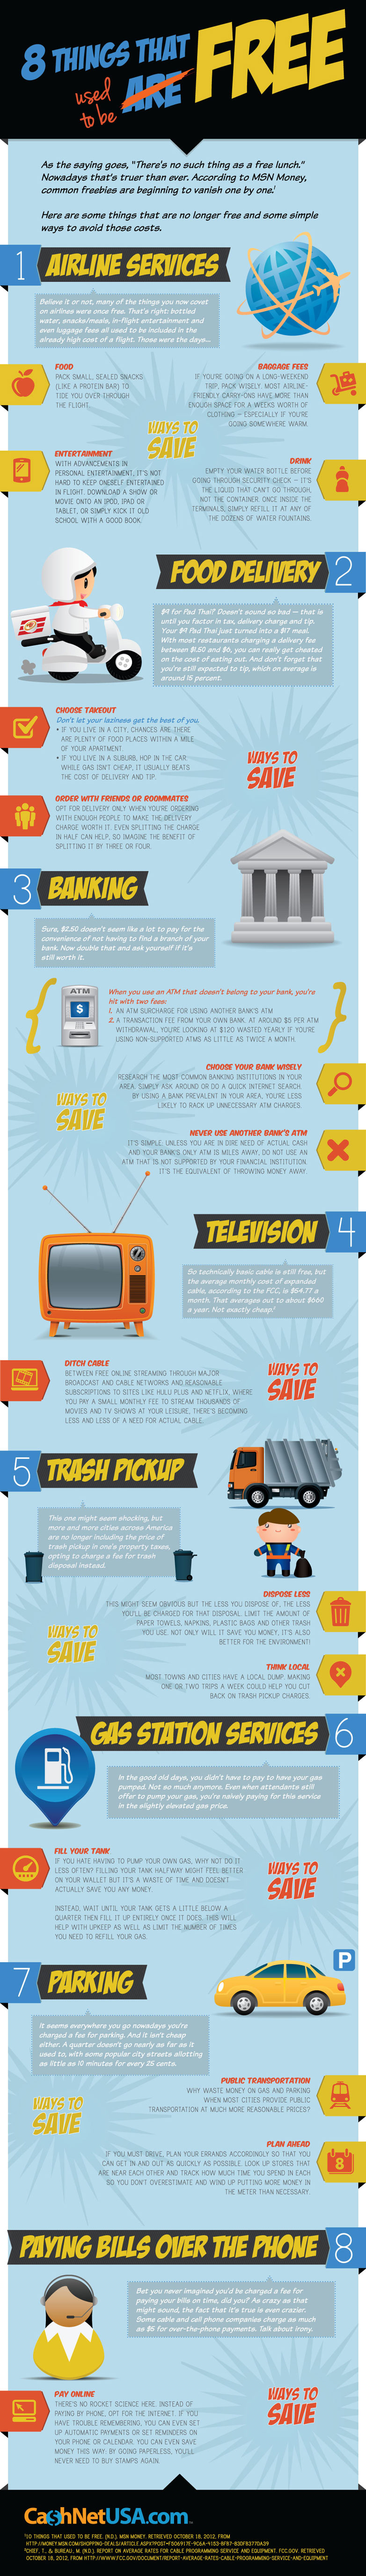 8 Freebies You Took for Granted that have Disappeared! - Infographic